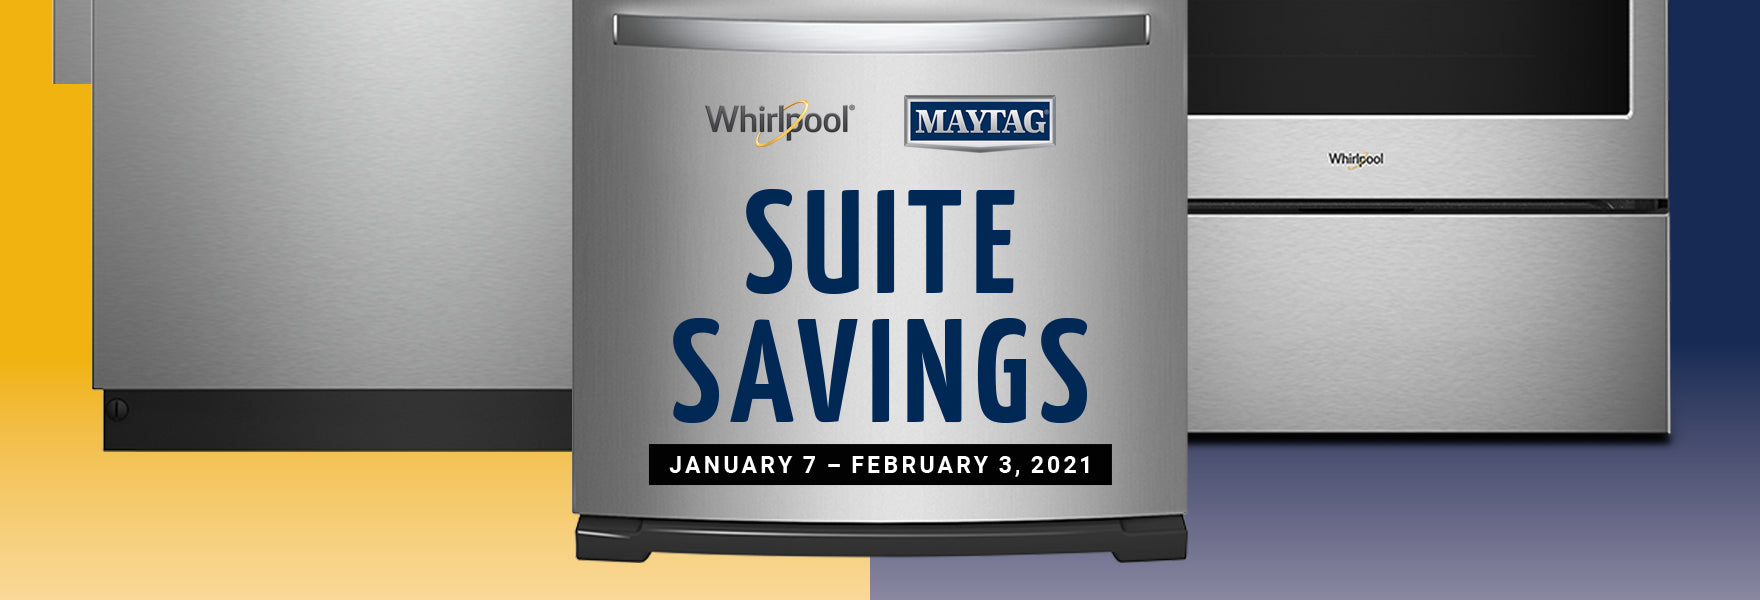 Whirlpool Maytag Suite Savings Event